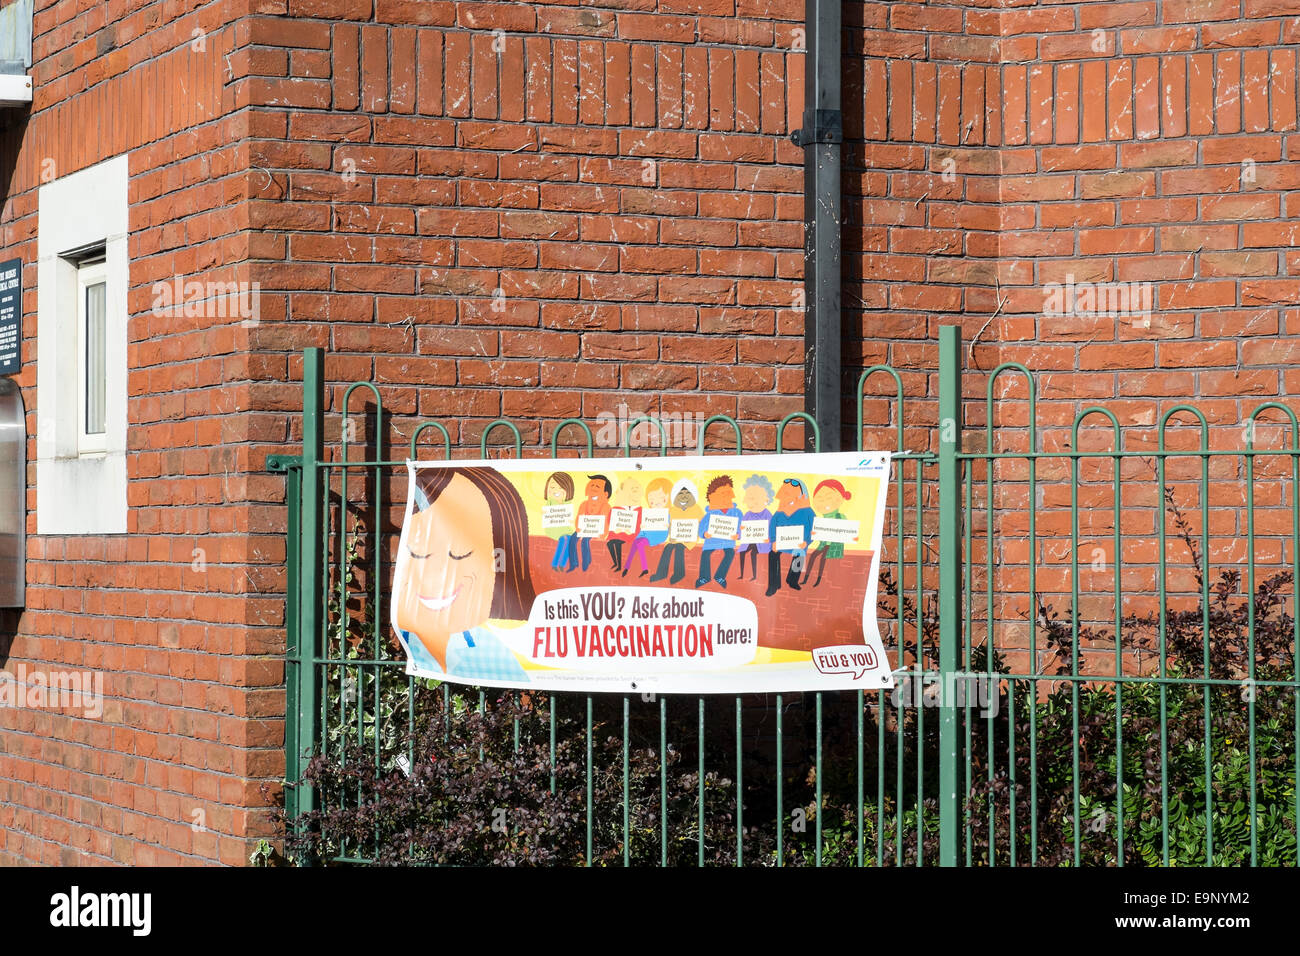 Banner on fence advertising flu vaccination - Stock Image